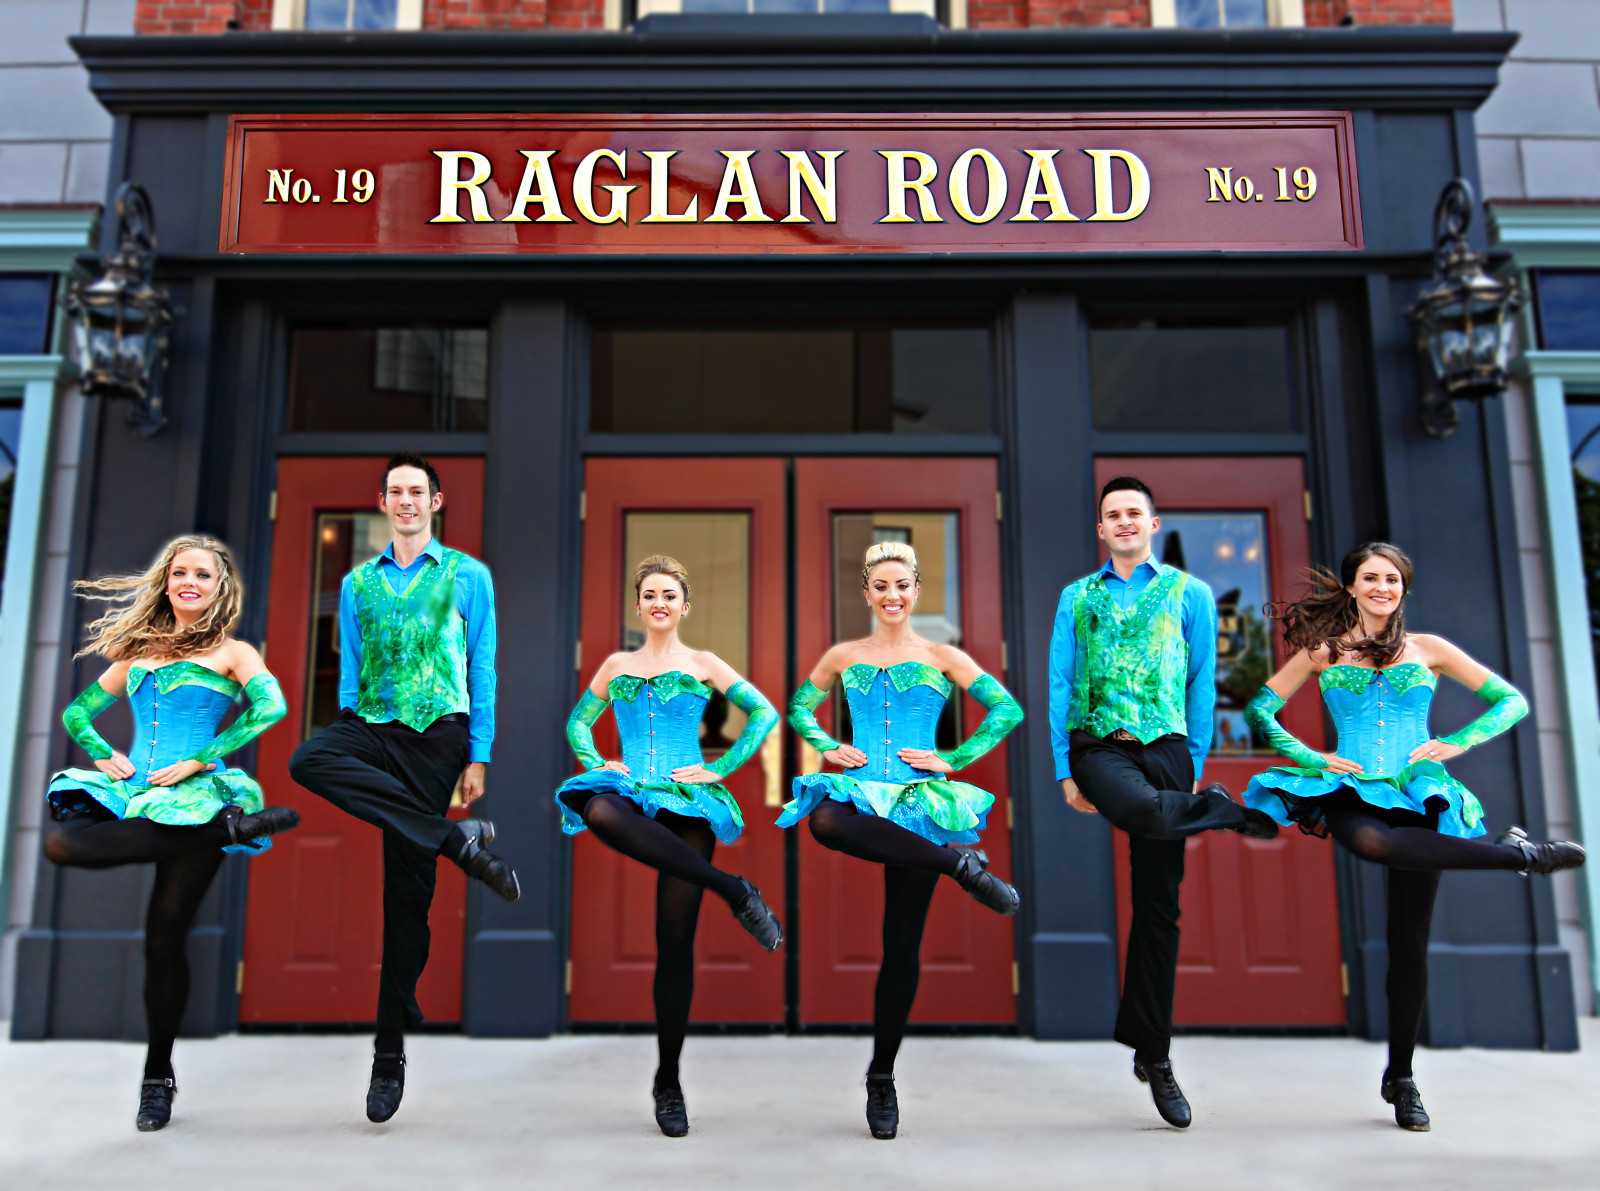 Raglan Road St. Patrick's Day Downtown Disney